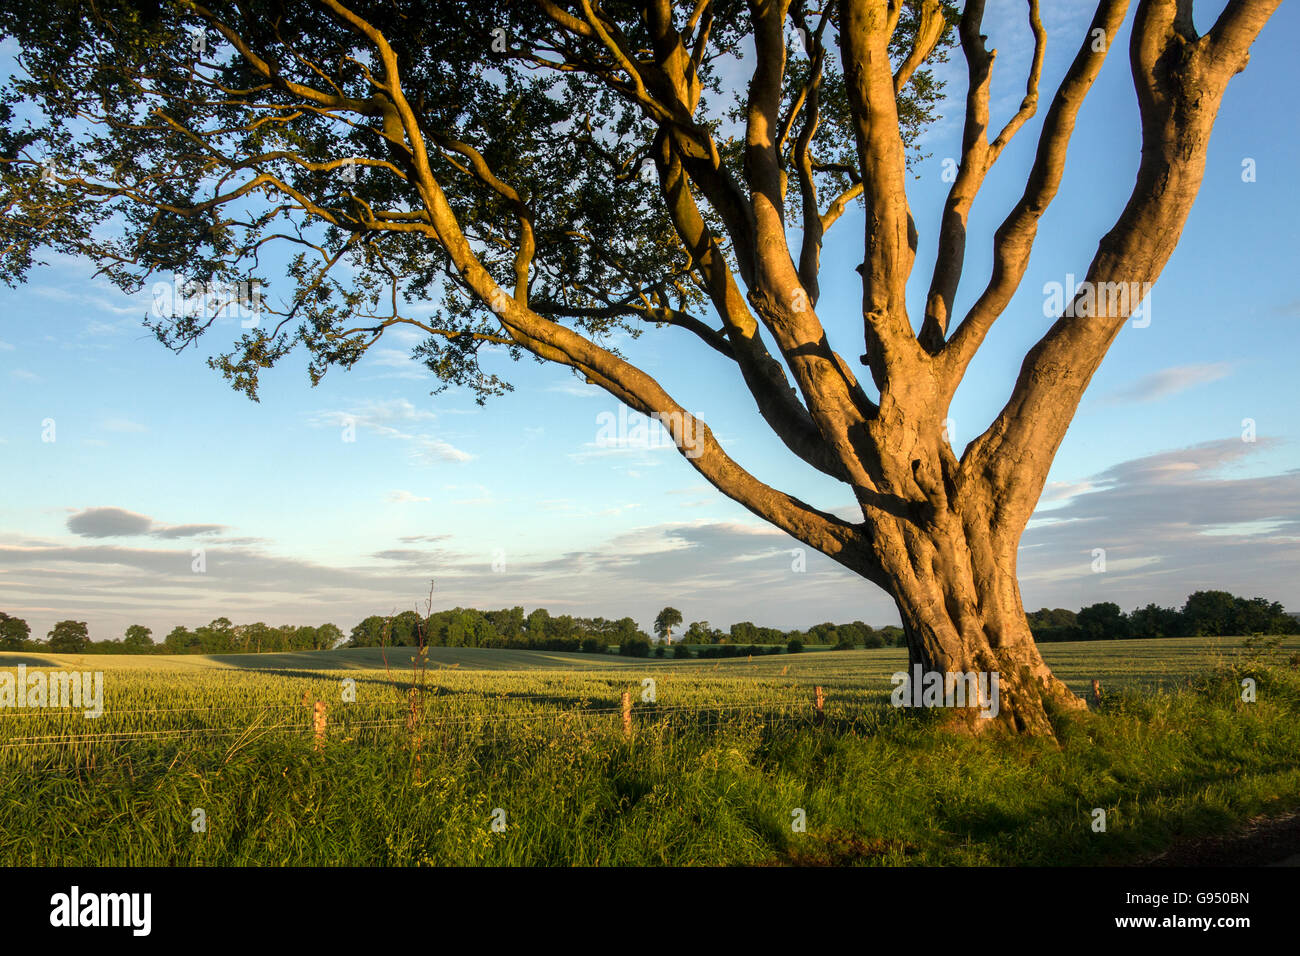 Early morning sunlight on the trees and fields of rural Ireland - County Antrim in Northern Ireland. - Stock Image